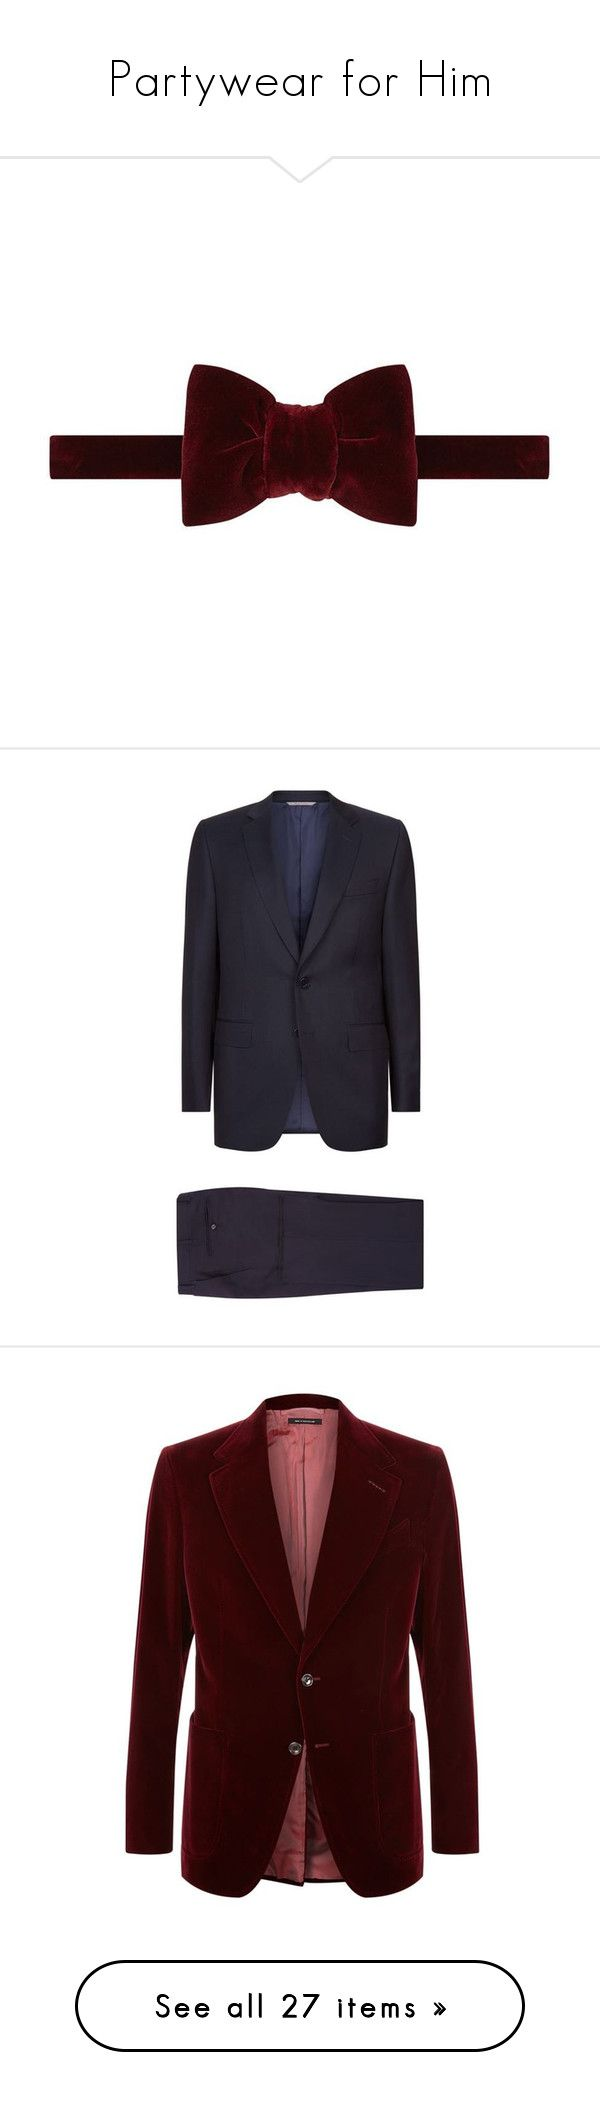 """Partywear for Him"" by harrods ❤ liked on Polyvore featuring men's fashion, men's accessories, men's neckwear, bow ties, men's clothing, men's suits, mens holiday suits, mens wool suits, mens tailored suits and canali men's suits"